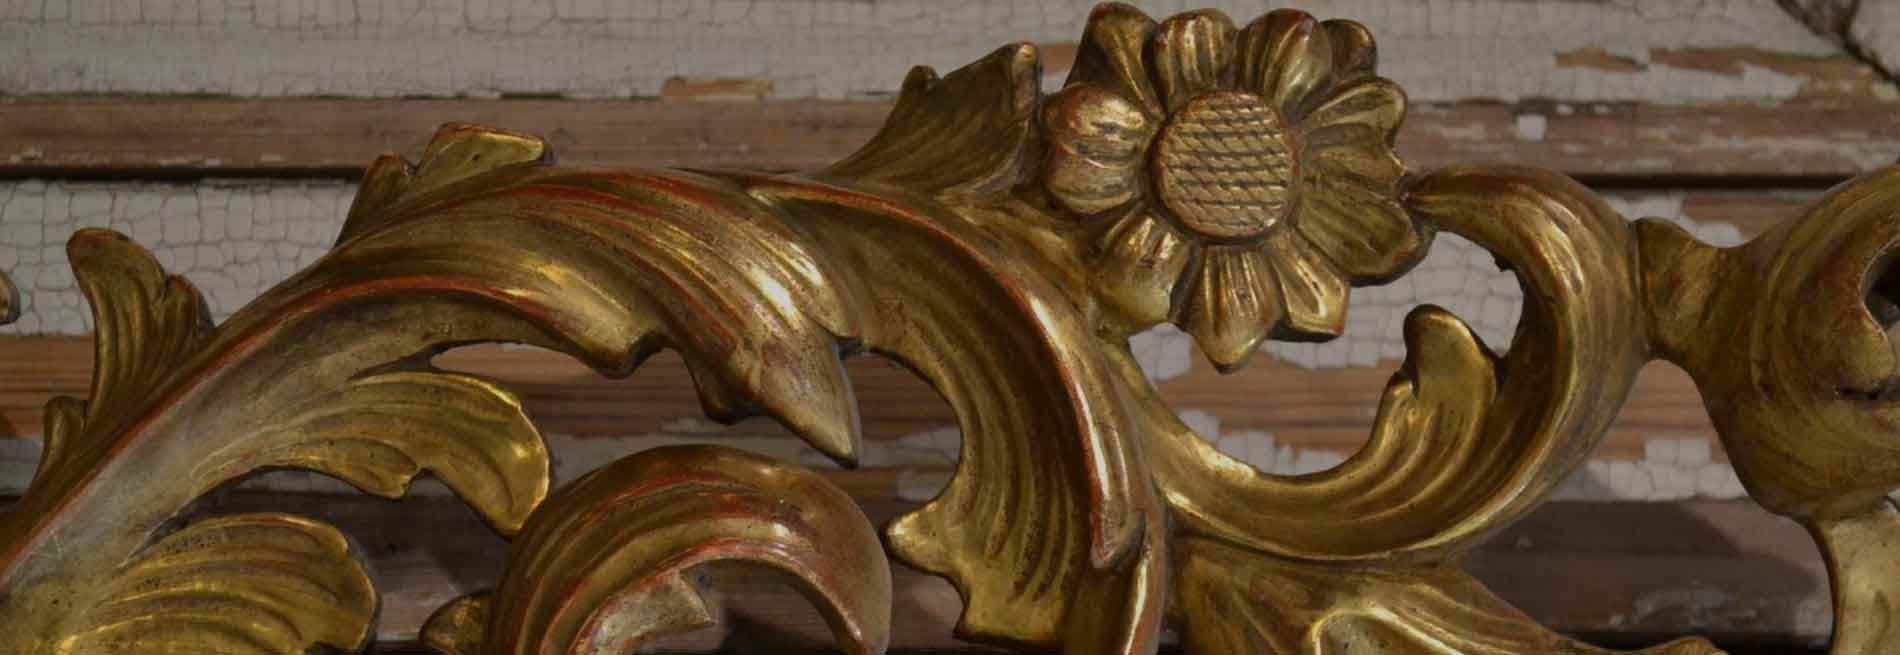 French Antique Mirrors: Gilding Workshop Regarding French Mirrors Antique (Image 15 of 20)